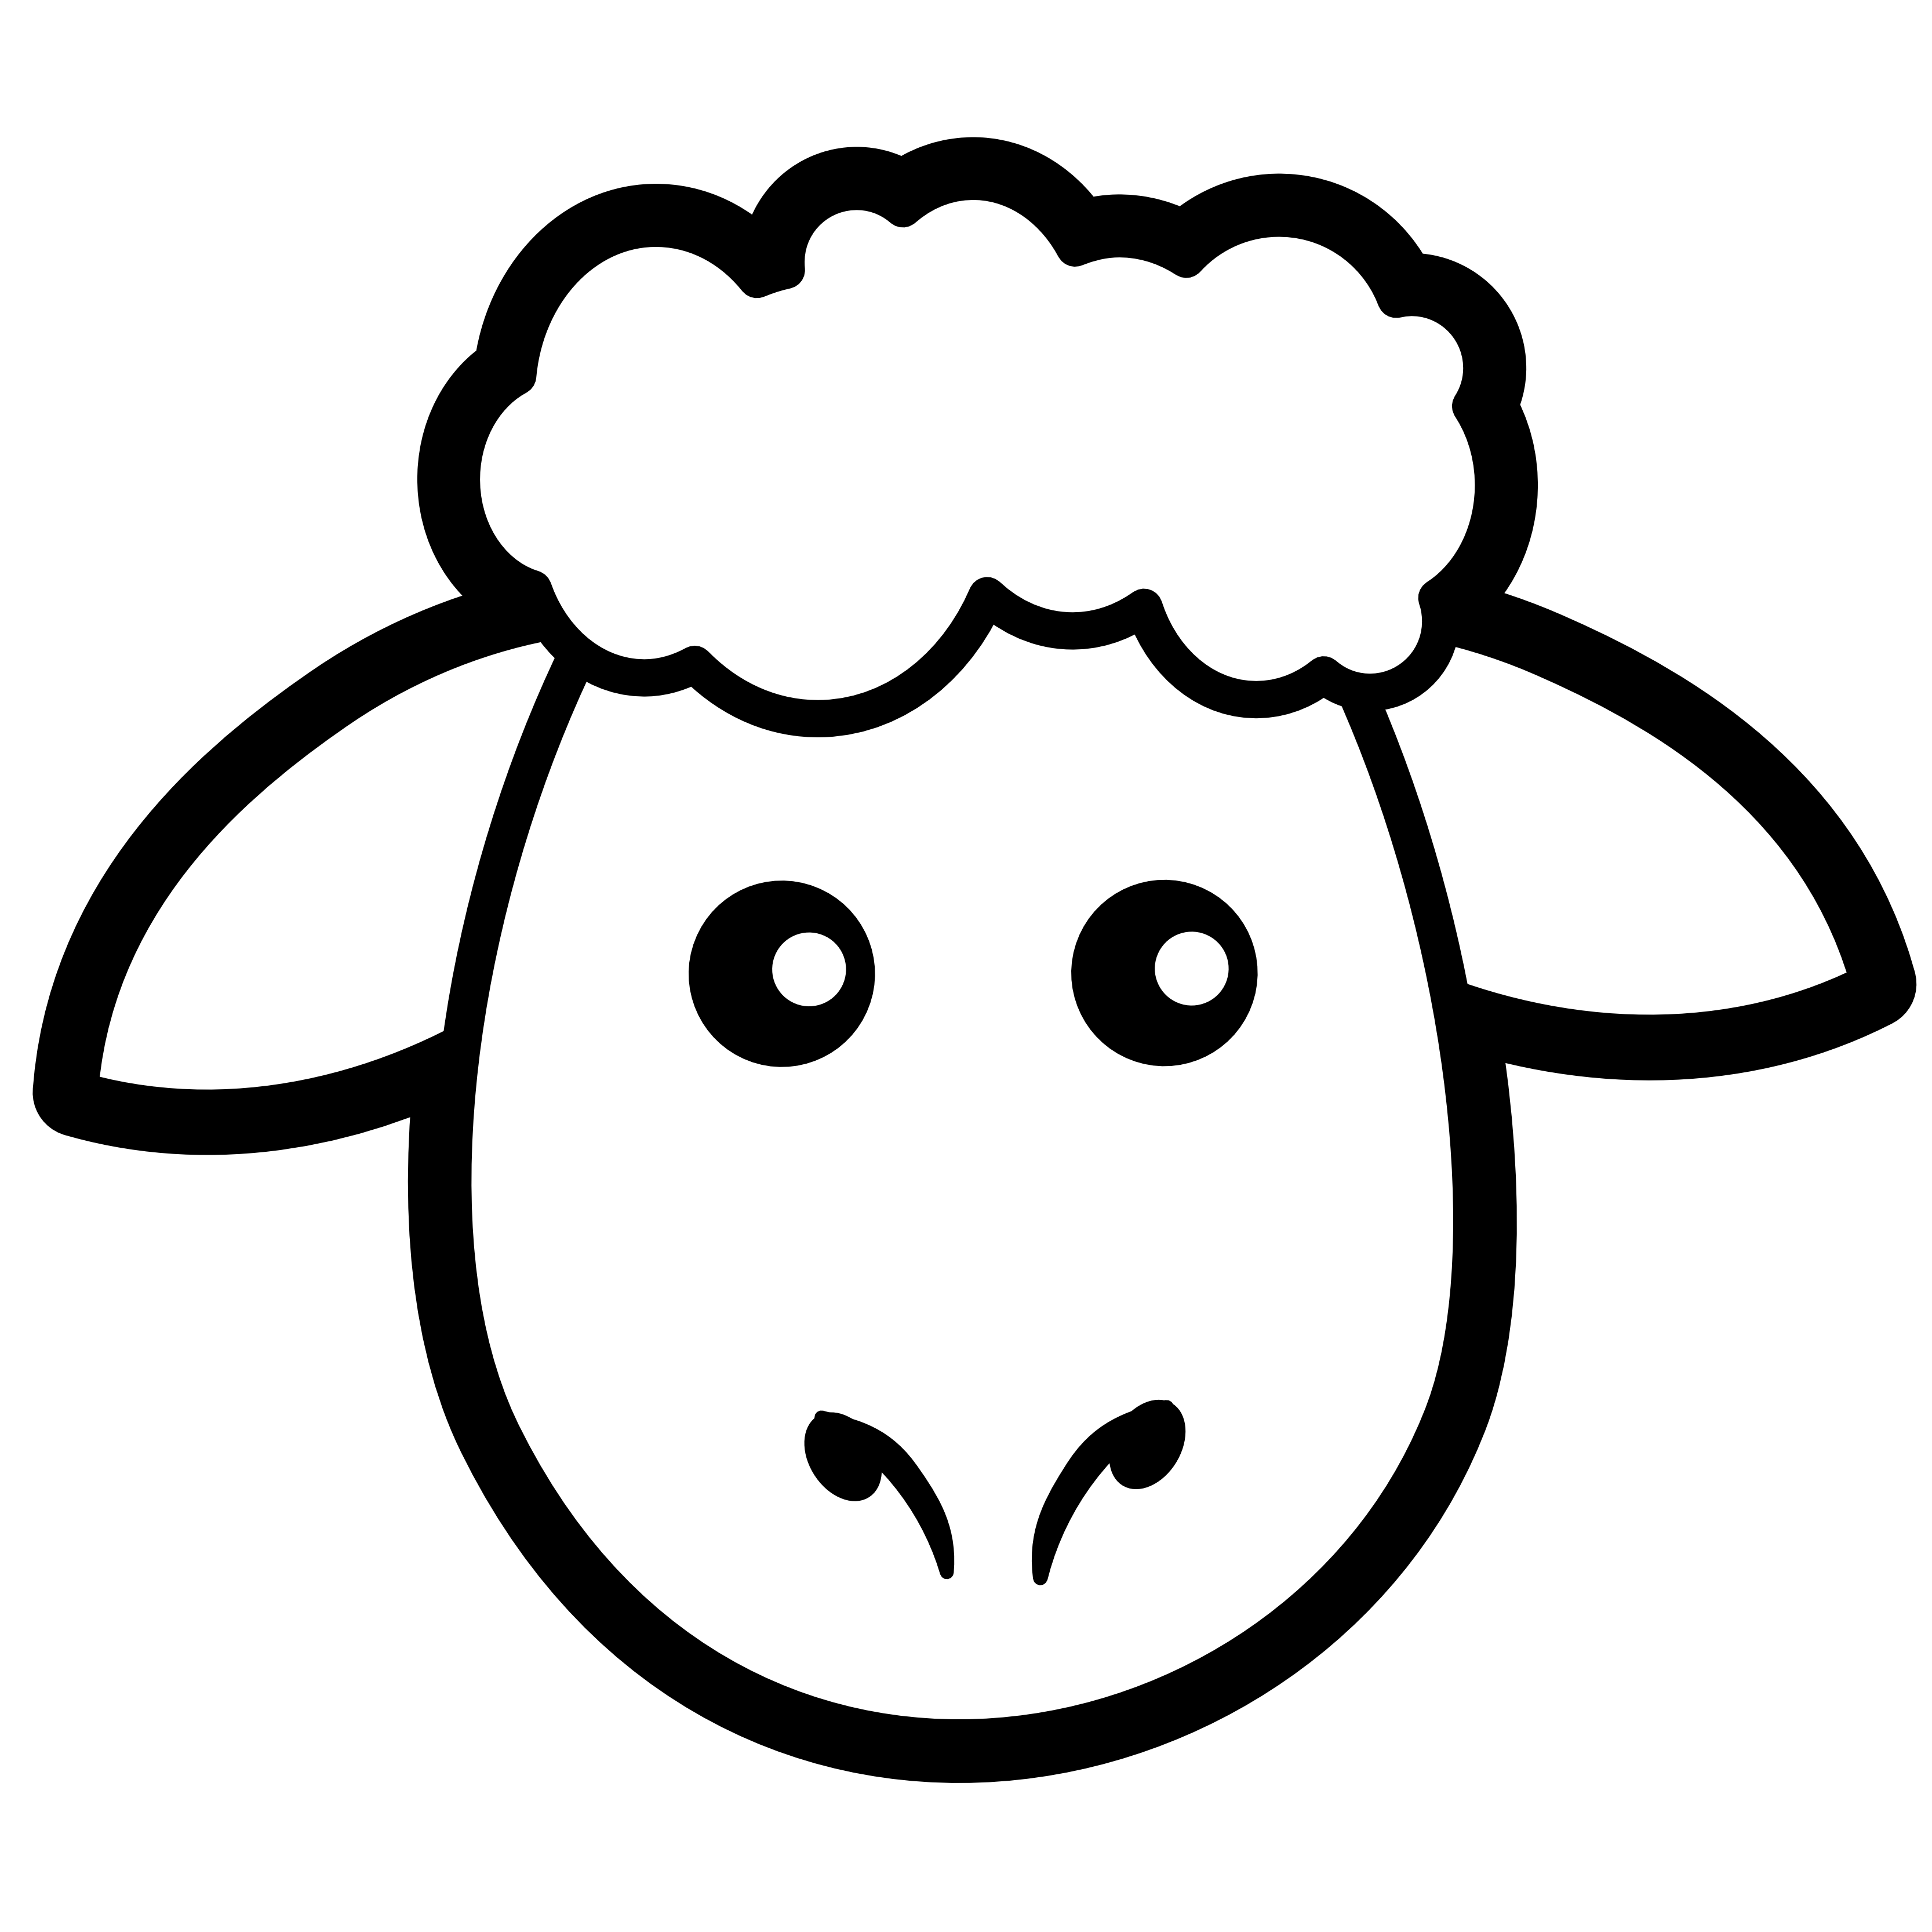 Sheep free images clipartix. Feelings clipart black and white